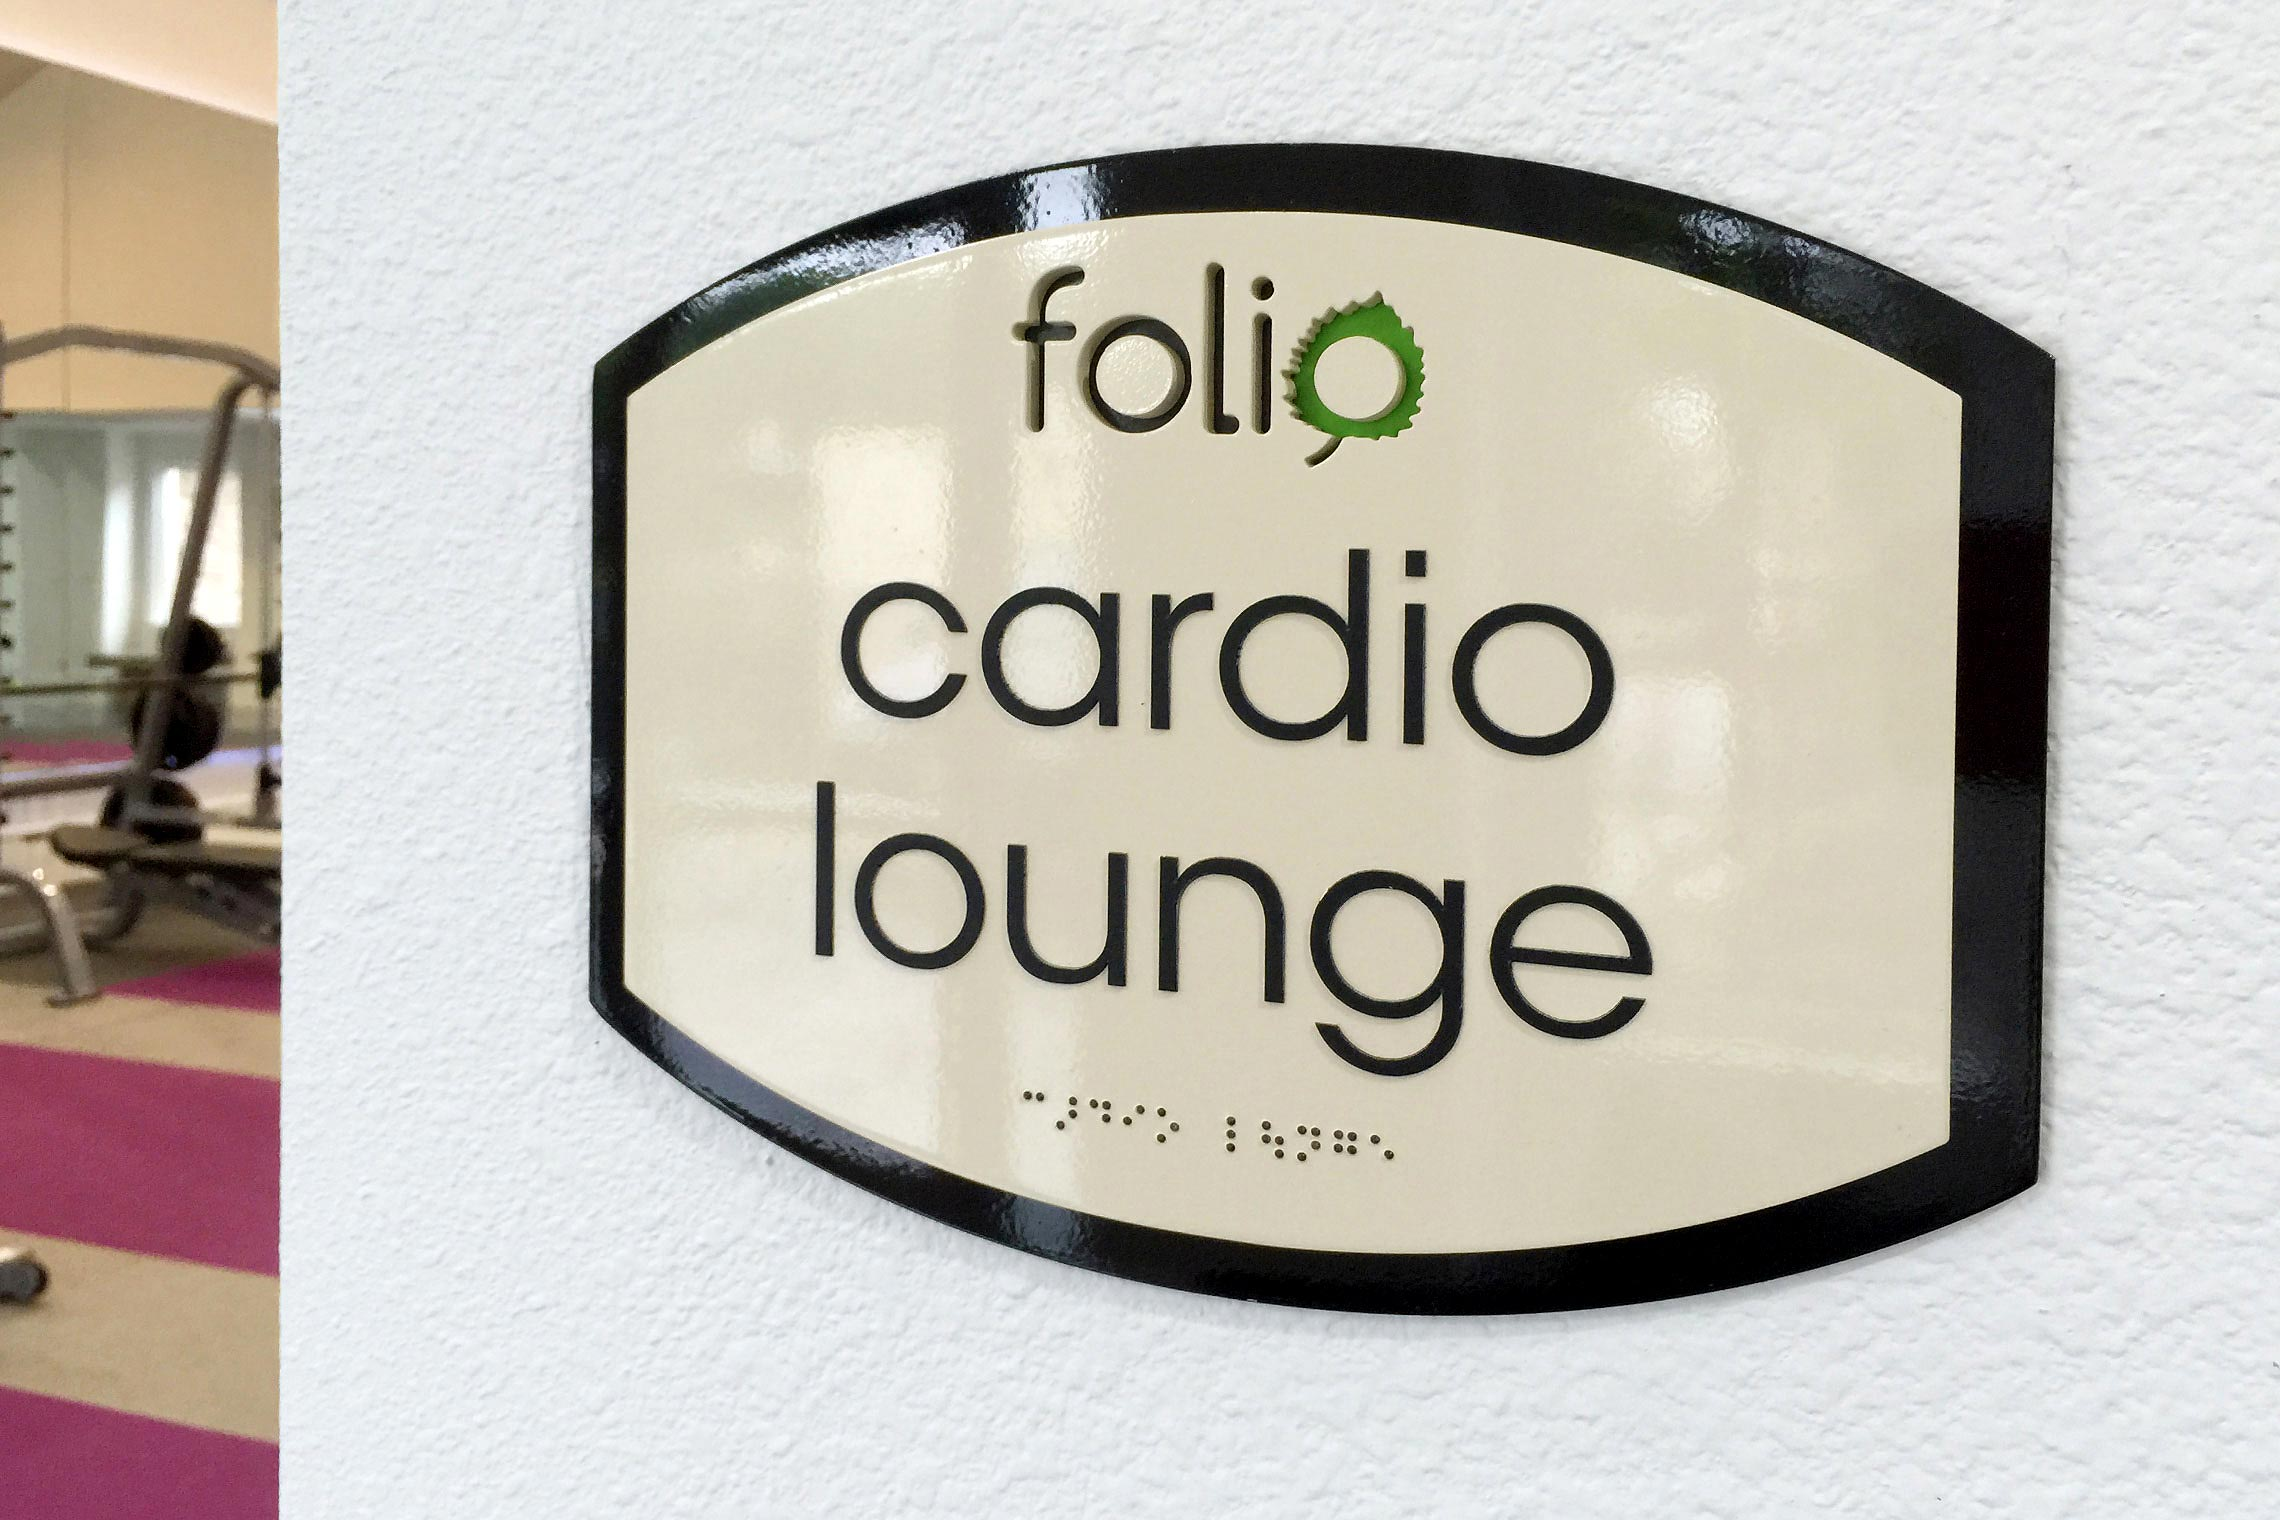 Folio Apartment Homes Cardio Lounge ID with ADA/Braille